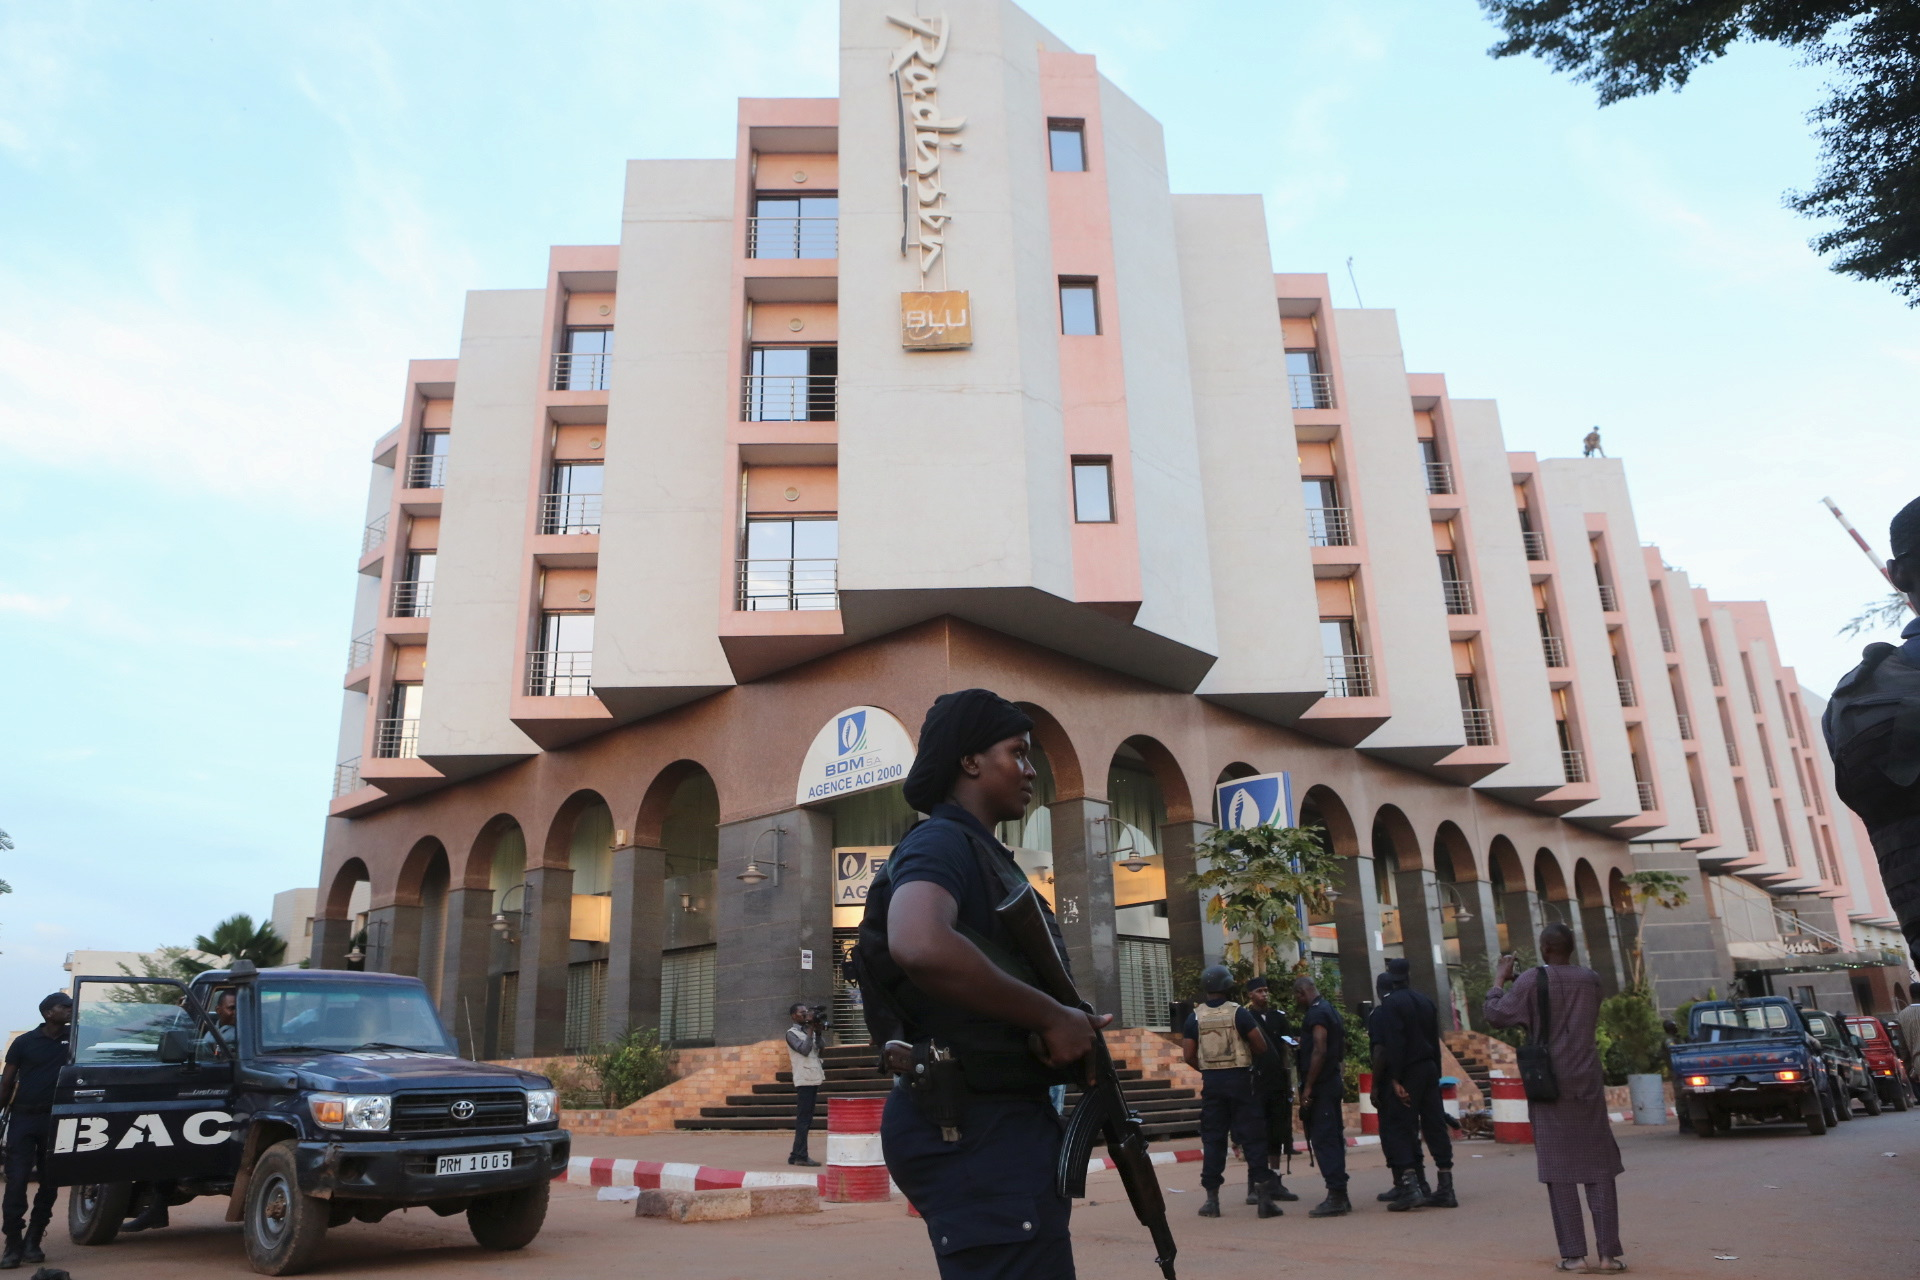 A Malian police officer stands guard in front of the Radisson hotel in Bamako, Mali, November 20, 2015.